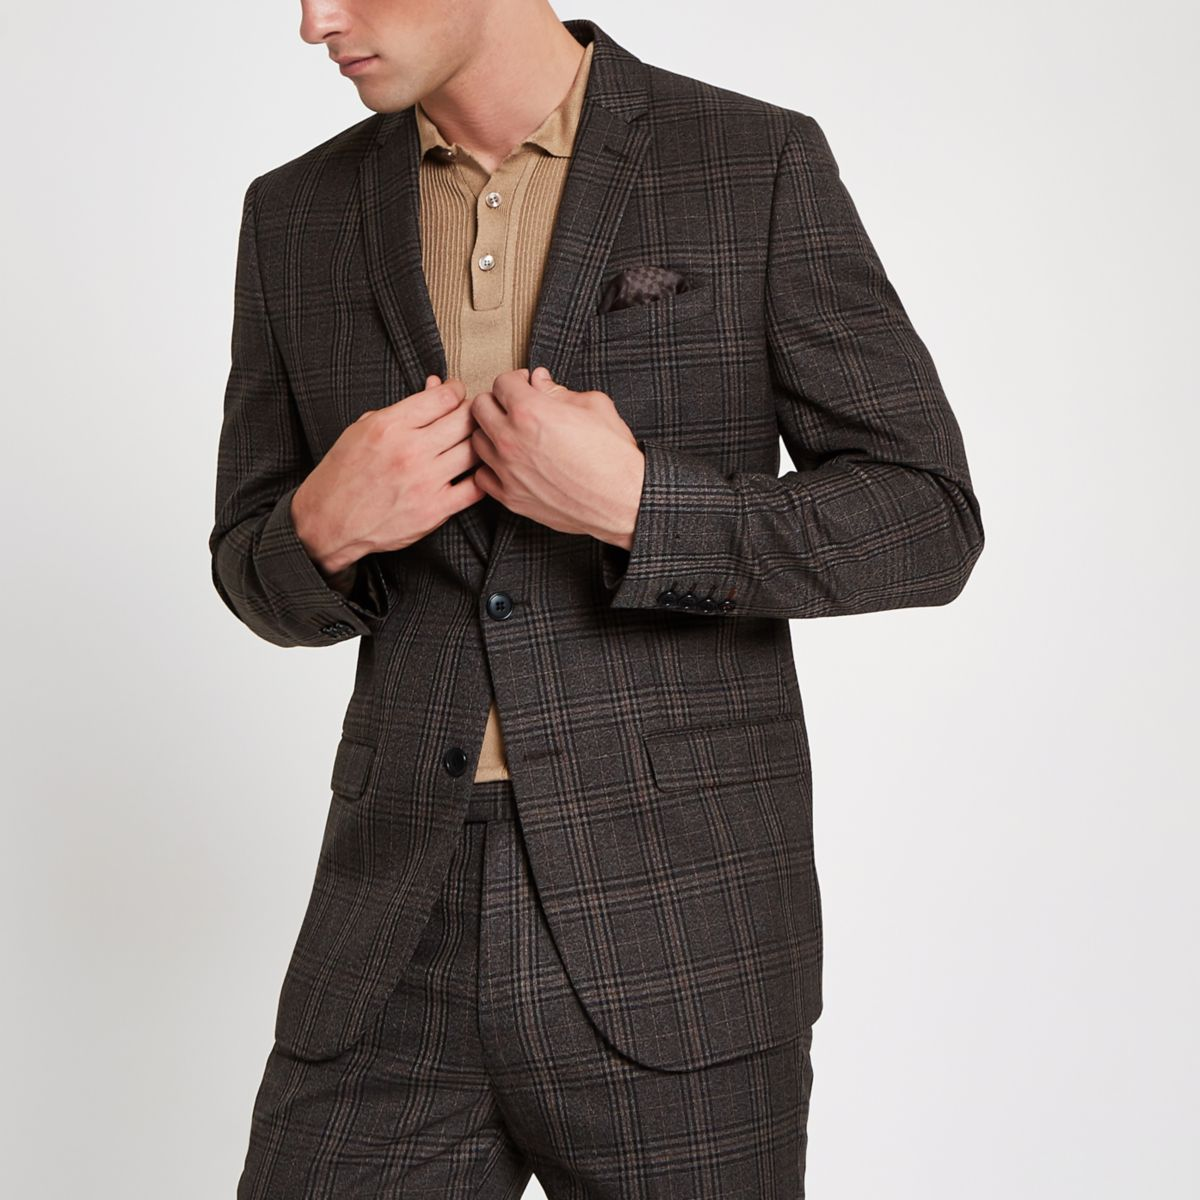 Veste de costume slim à carreaux marron